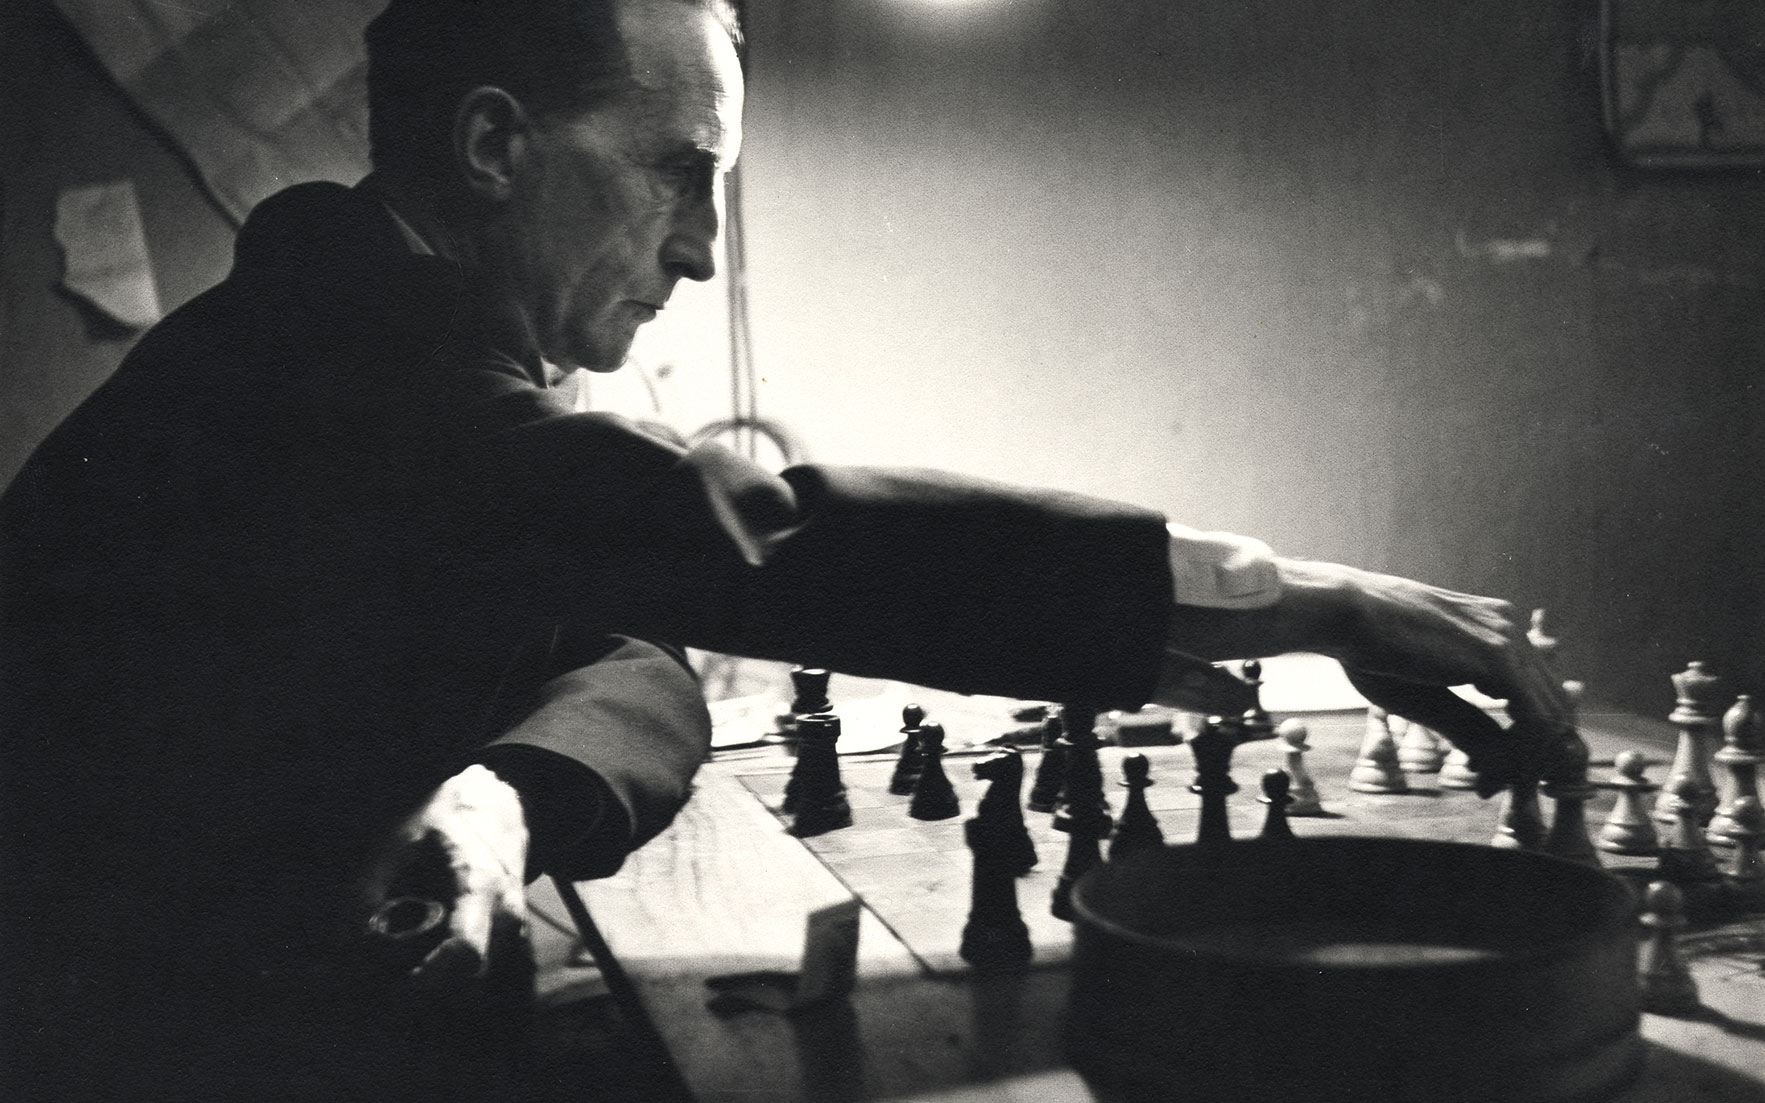 Marcel Duchamp playing chess in his studio (detail), 1952  Kay Bell Reynal, photographer. [Photographs of artists taken by Kay Bell Reynal], 1952. Archives of American Art, Smithsonian Institution